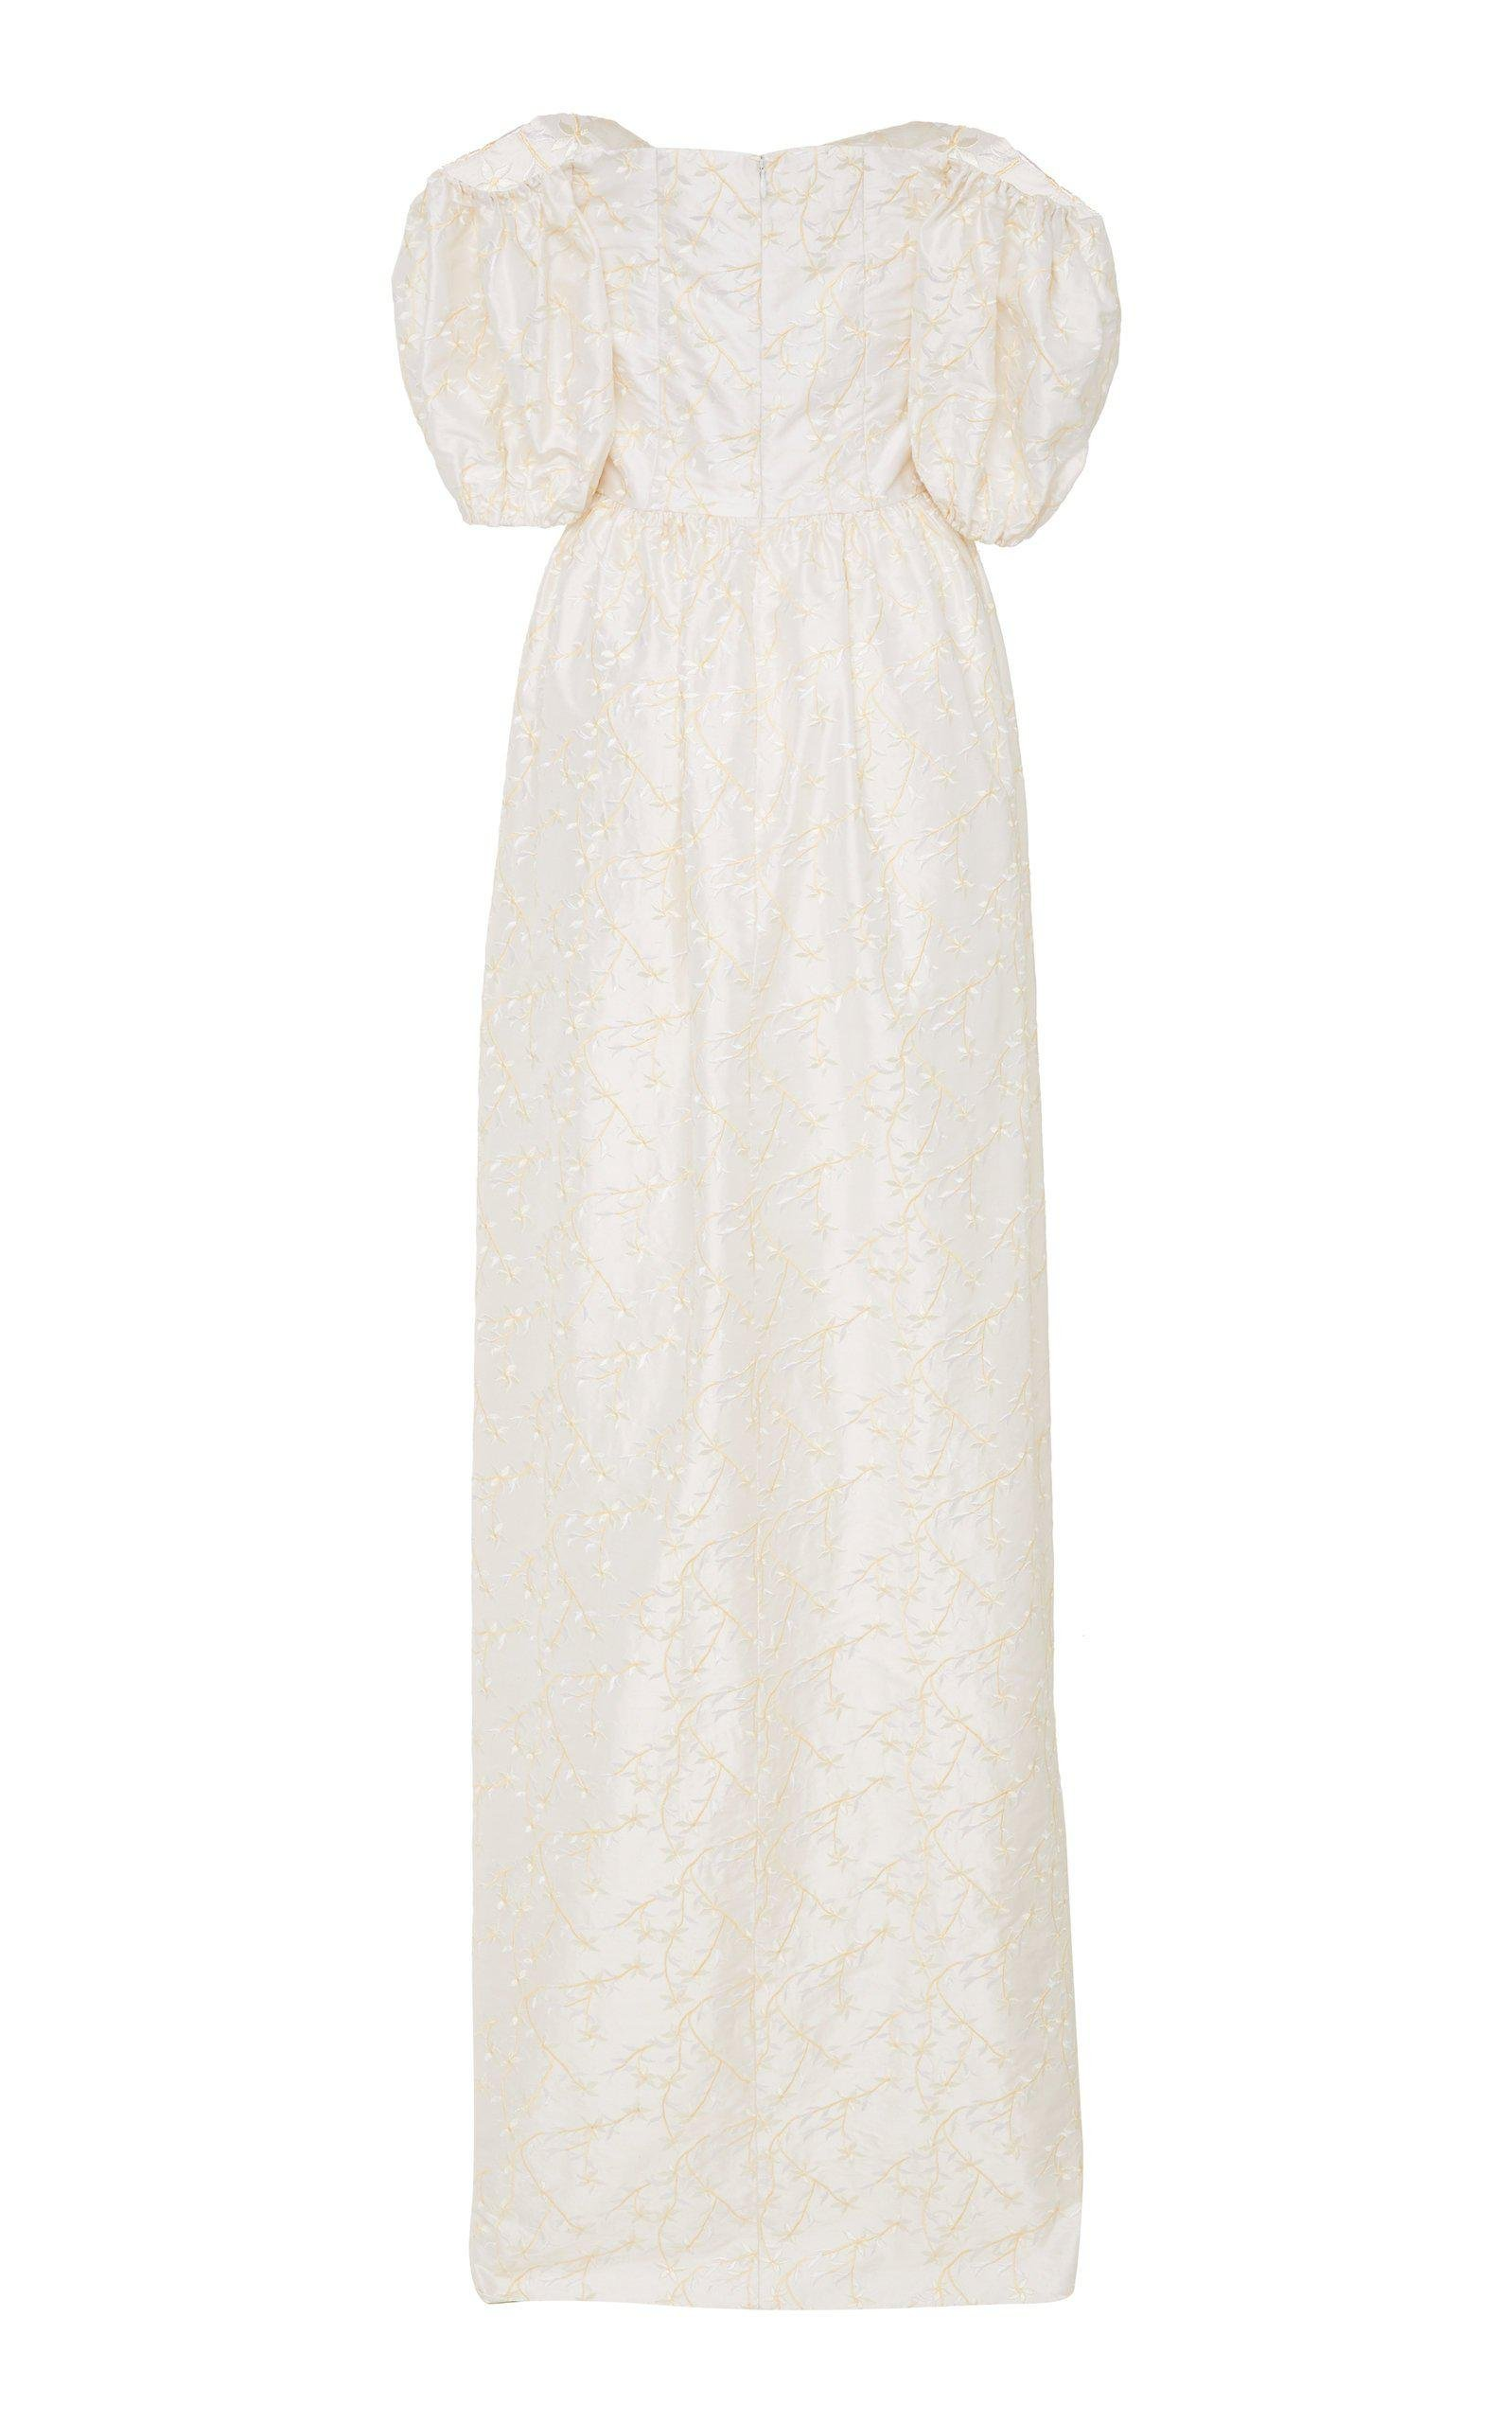 Archive Sale: White Floral Embroidered Silk Gown 2